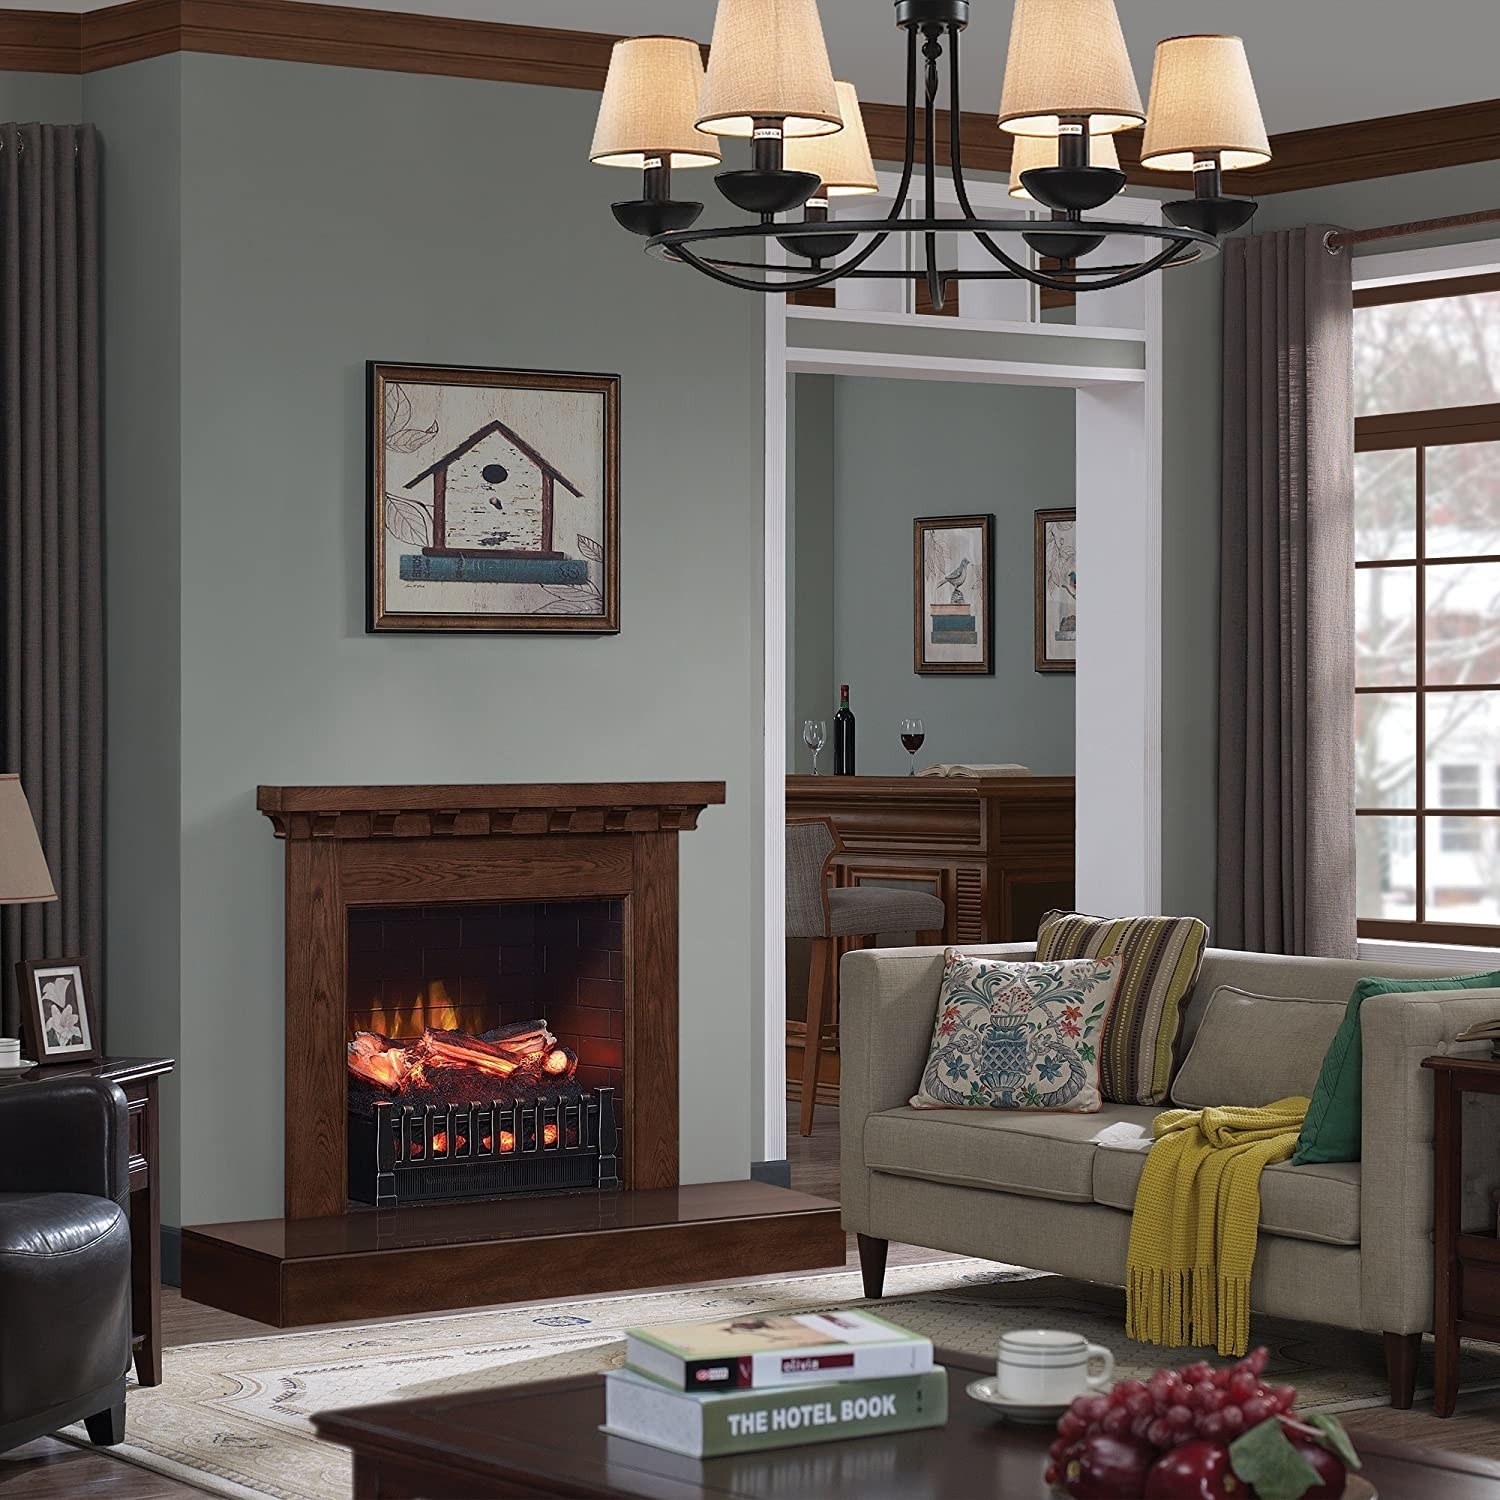 Electric fireplace in front of living room decorated with a cozy gray couch, armchair, and coffee table